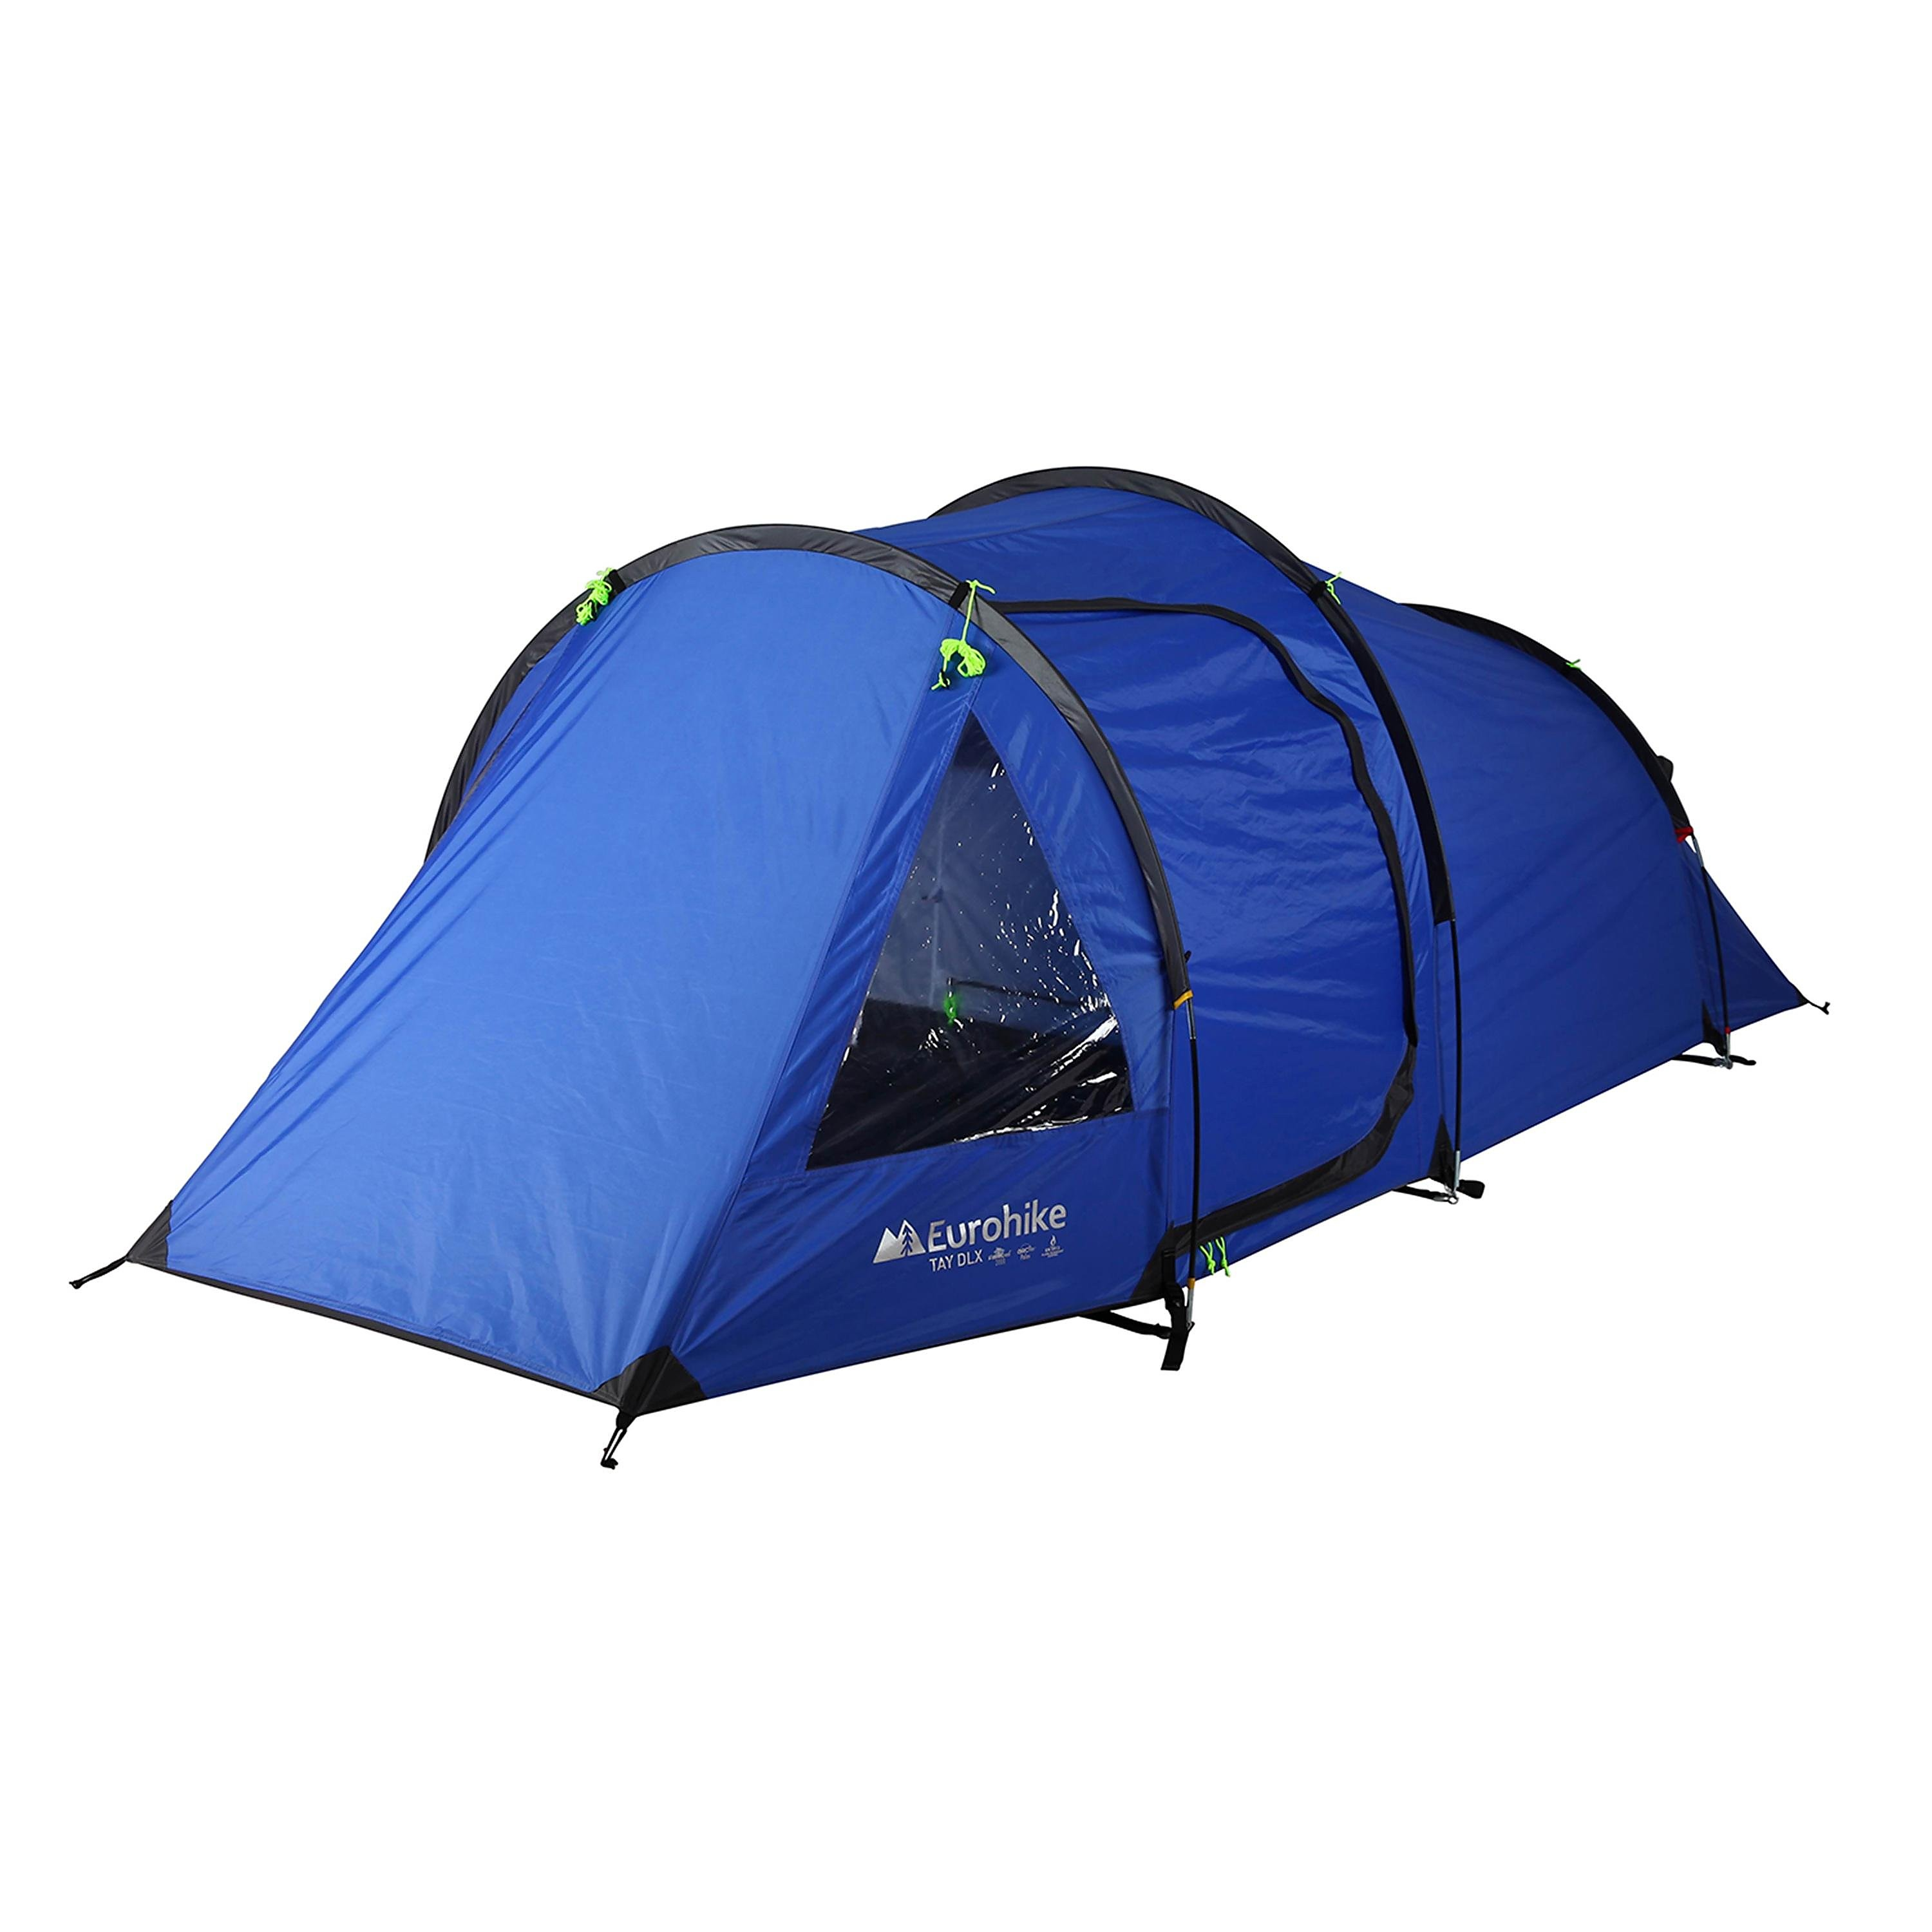 EUROHIKE Tay Deluxe 2 Man Tent